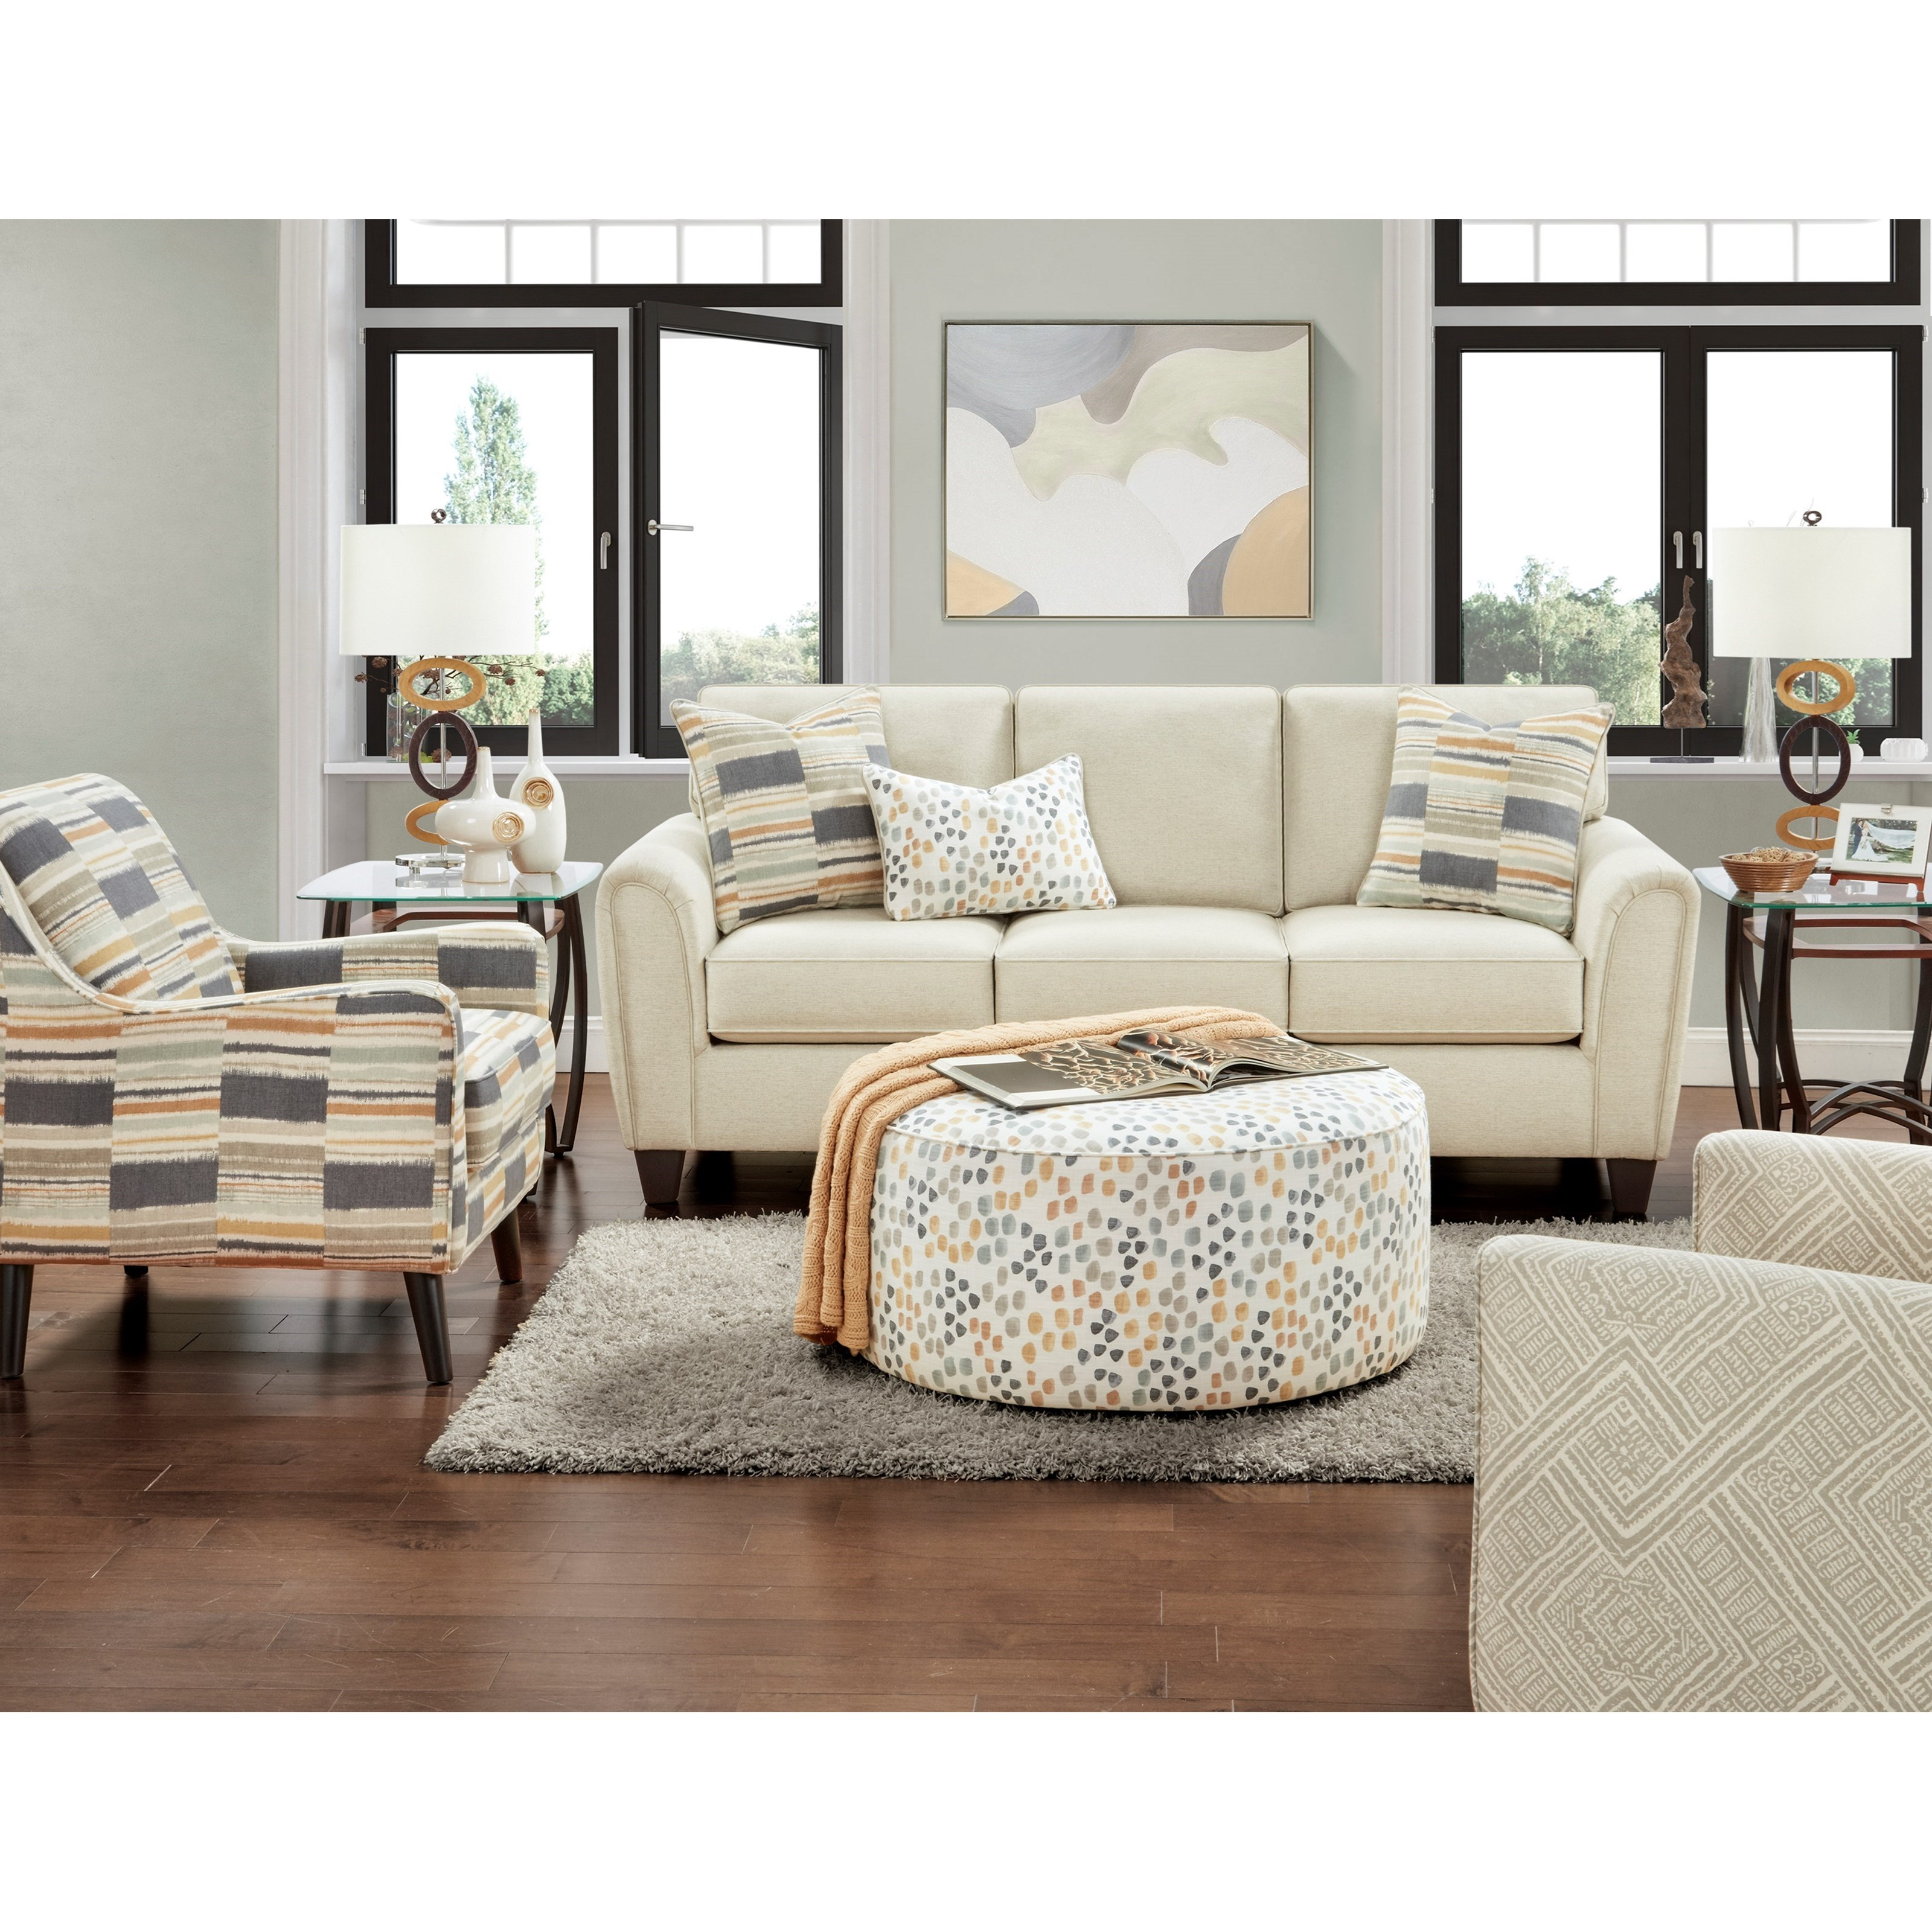 49-00 Living Room Group by VFM Signature at Virginia Furniture Market